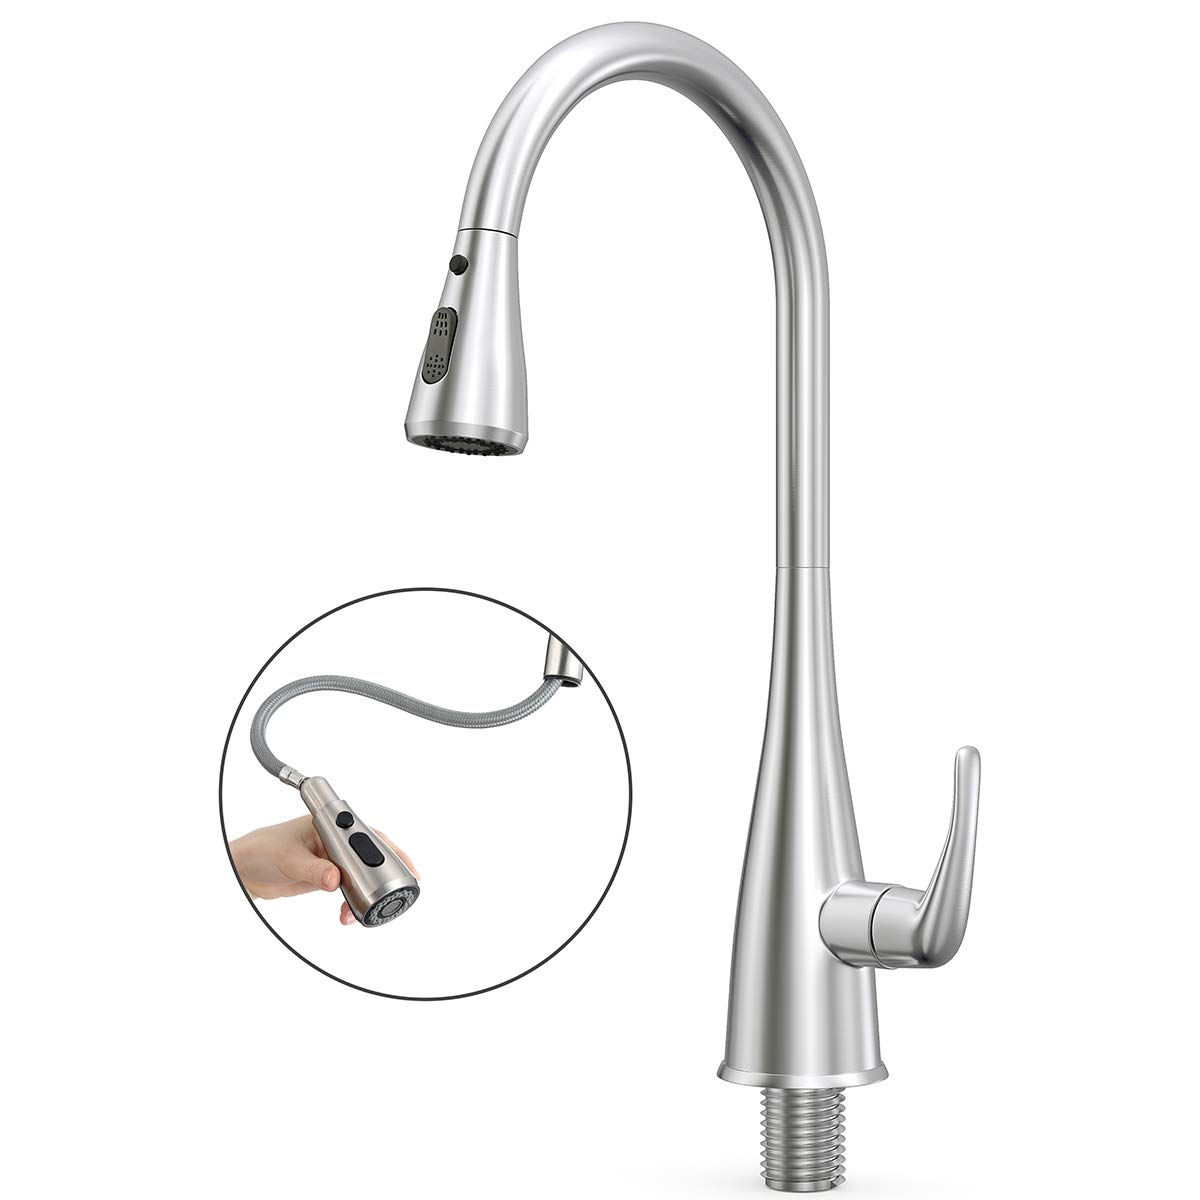 Kitchen Faucet, Prymax Kitchen Sink Faucet Single Handle Pull-Down Delta Kitchen Faucet with Pull Down Sprayer 360 Swivel Hot Cold Conversion Stainless Steel Faucet